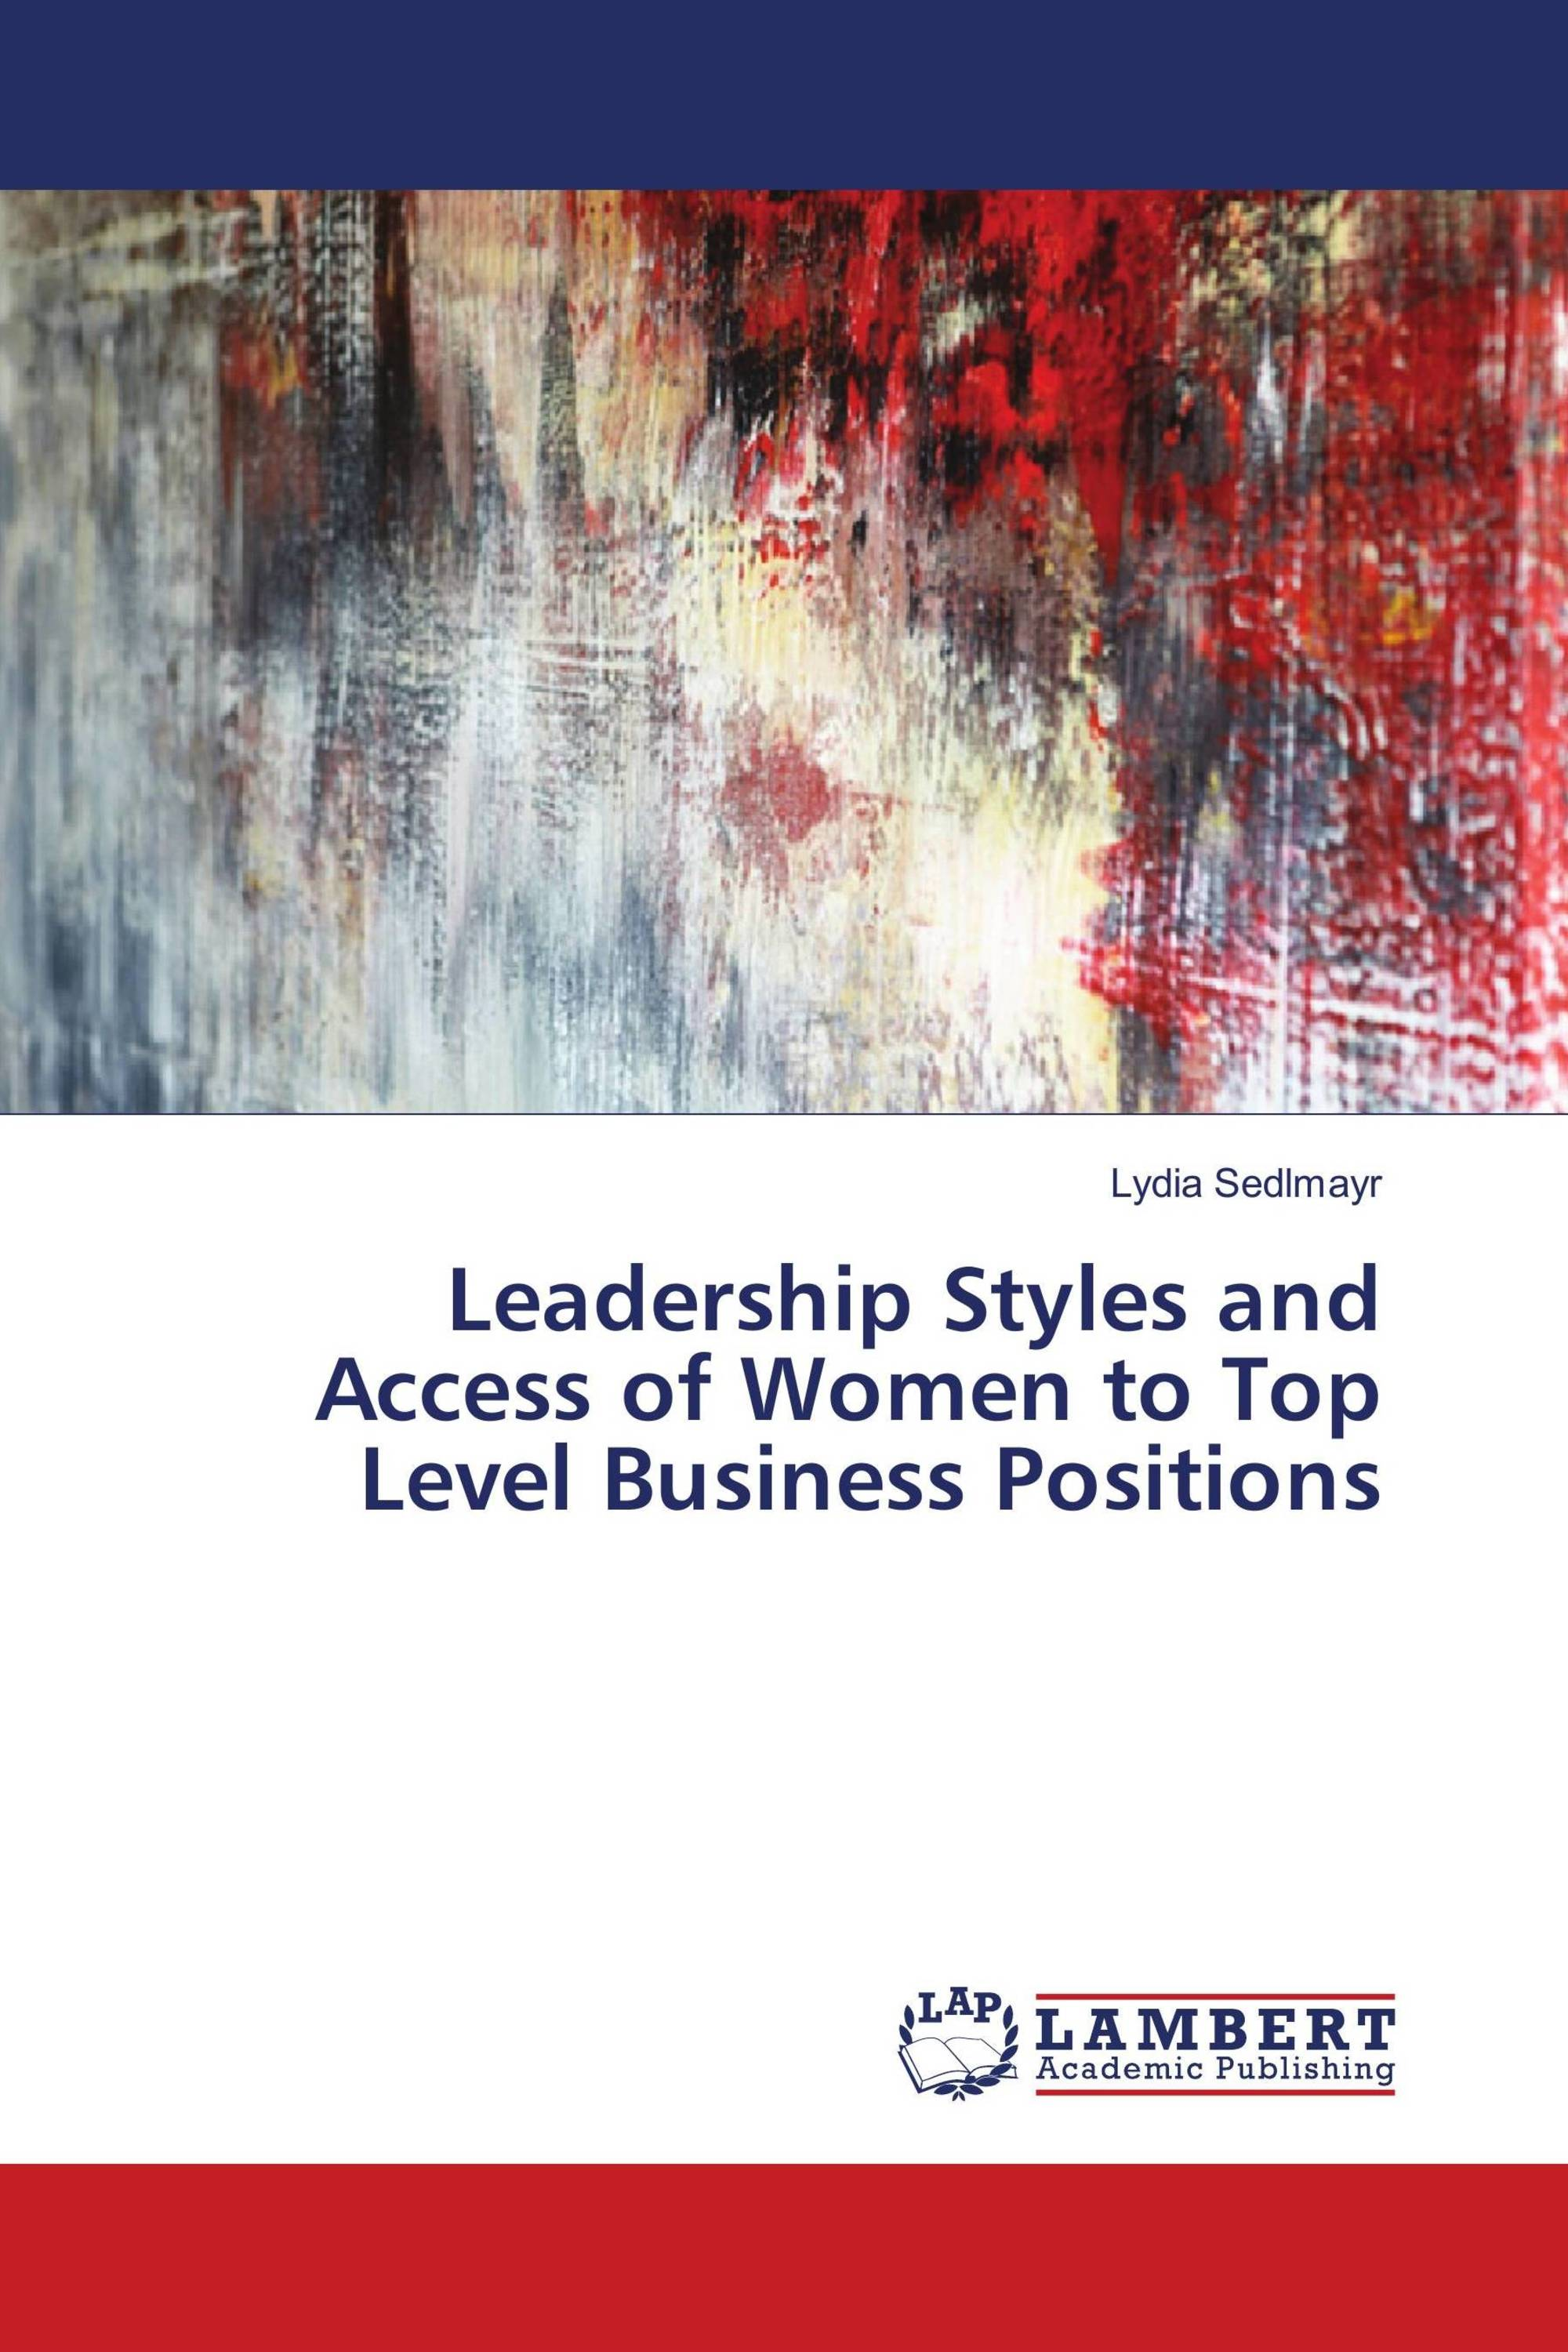 Leadership Styles and Access of Women to Top Level Business Positions